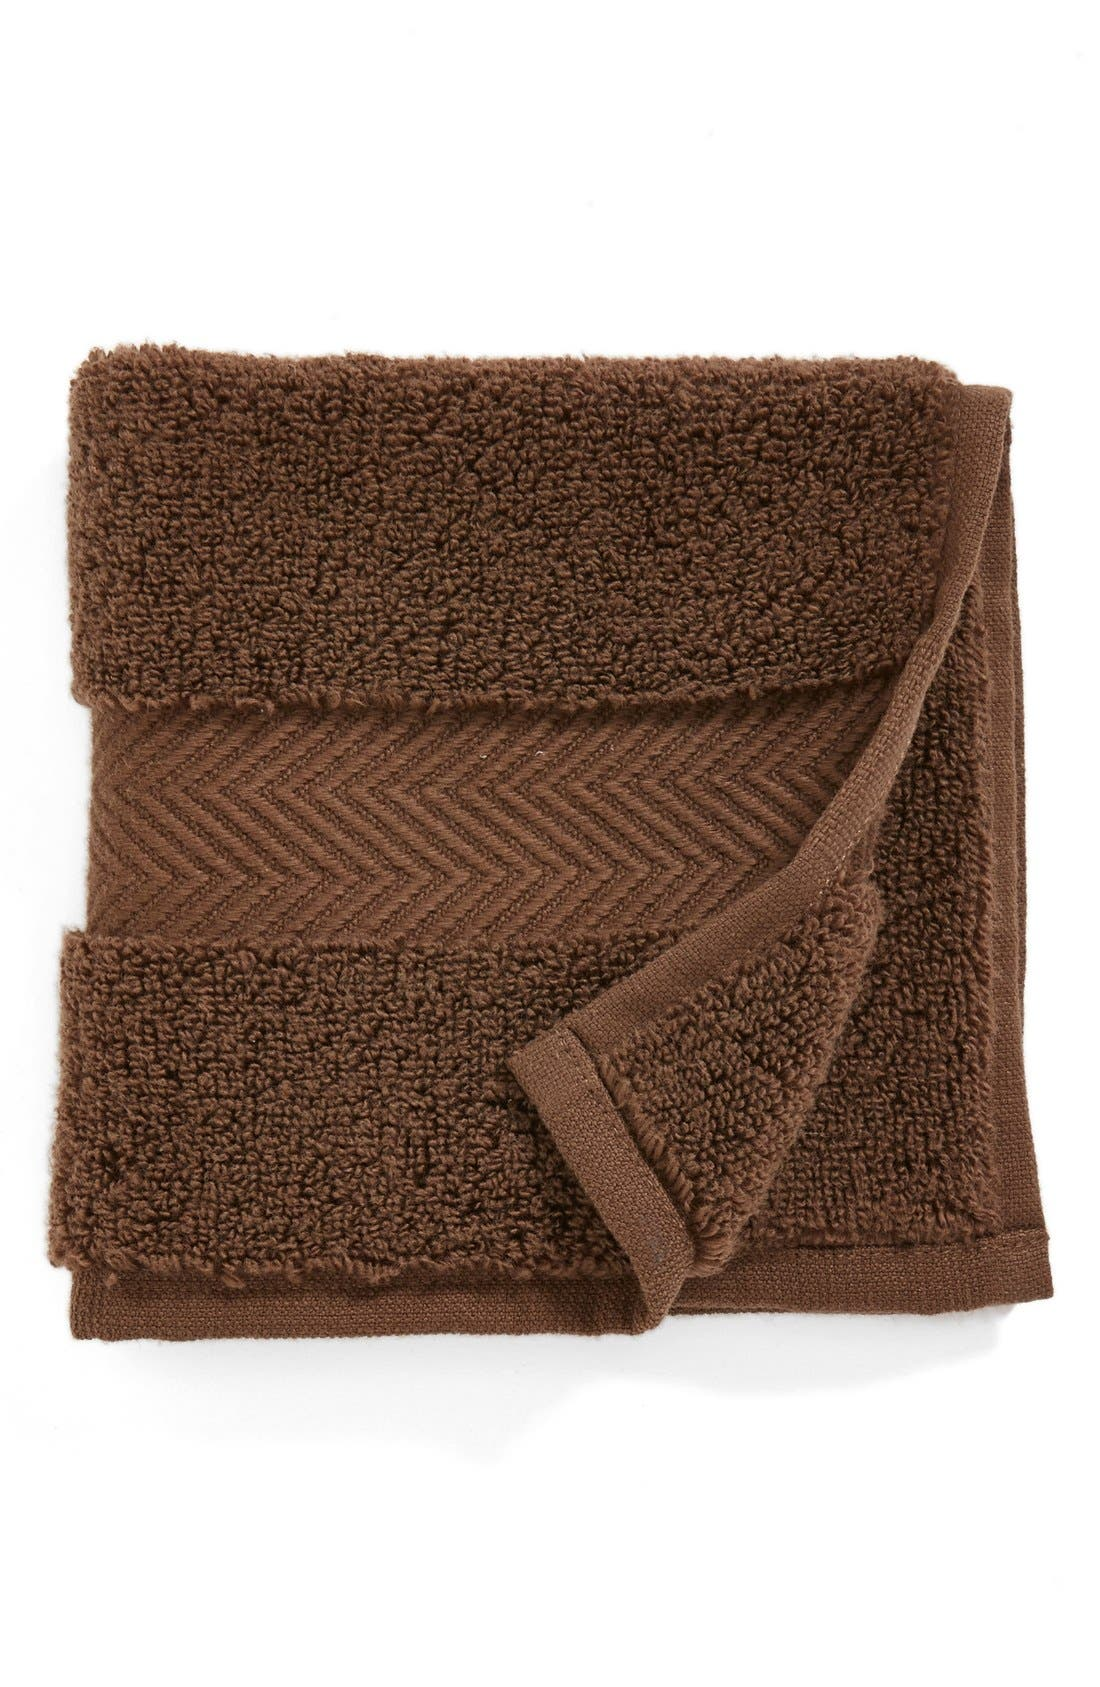 Alternate Image 1 Selected - Nordstrom at Home Hydrocotton Washcloth (2 for $17)